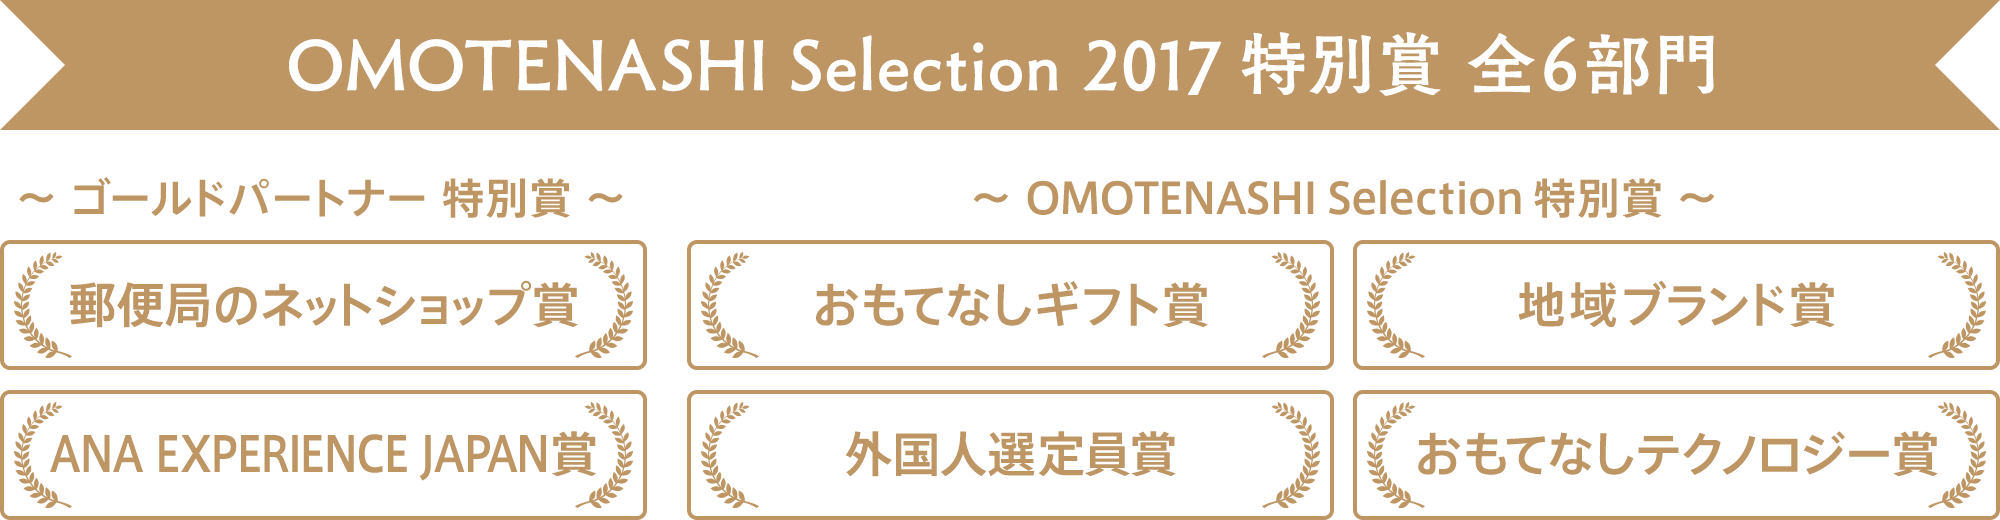 OMOTENASHI Selection 2017 特別賞 全6部門